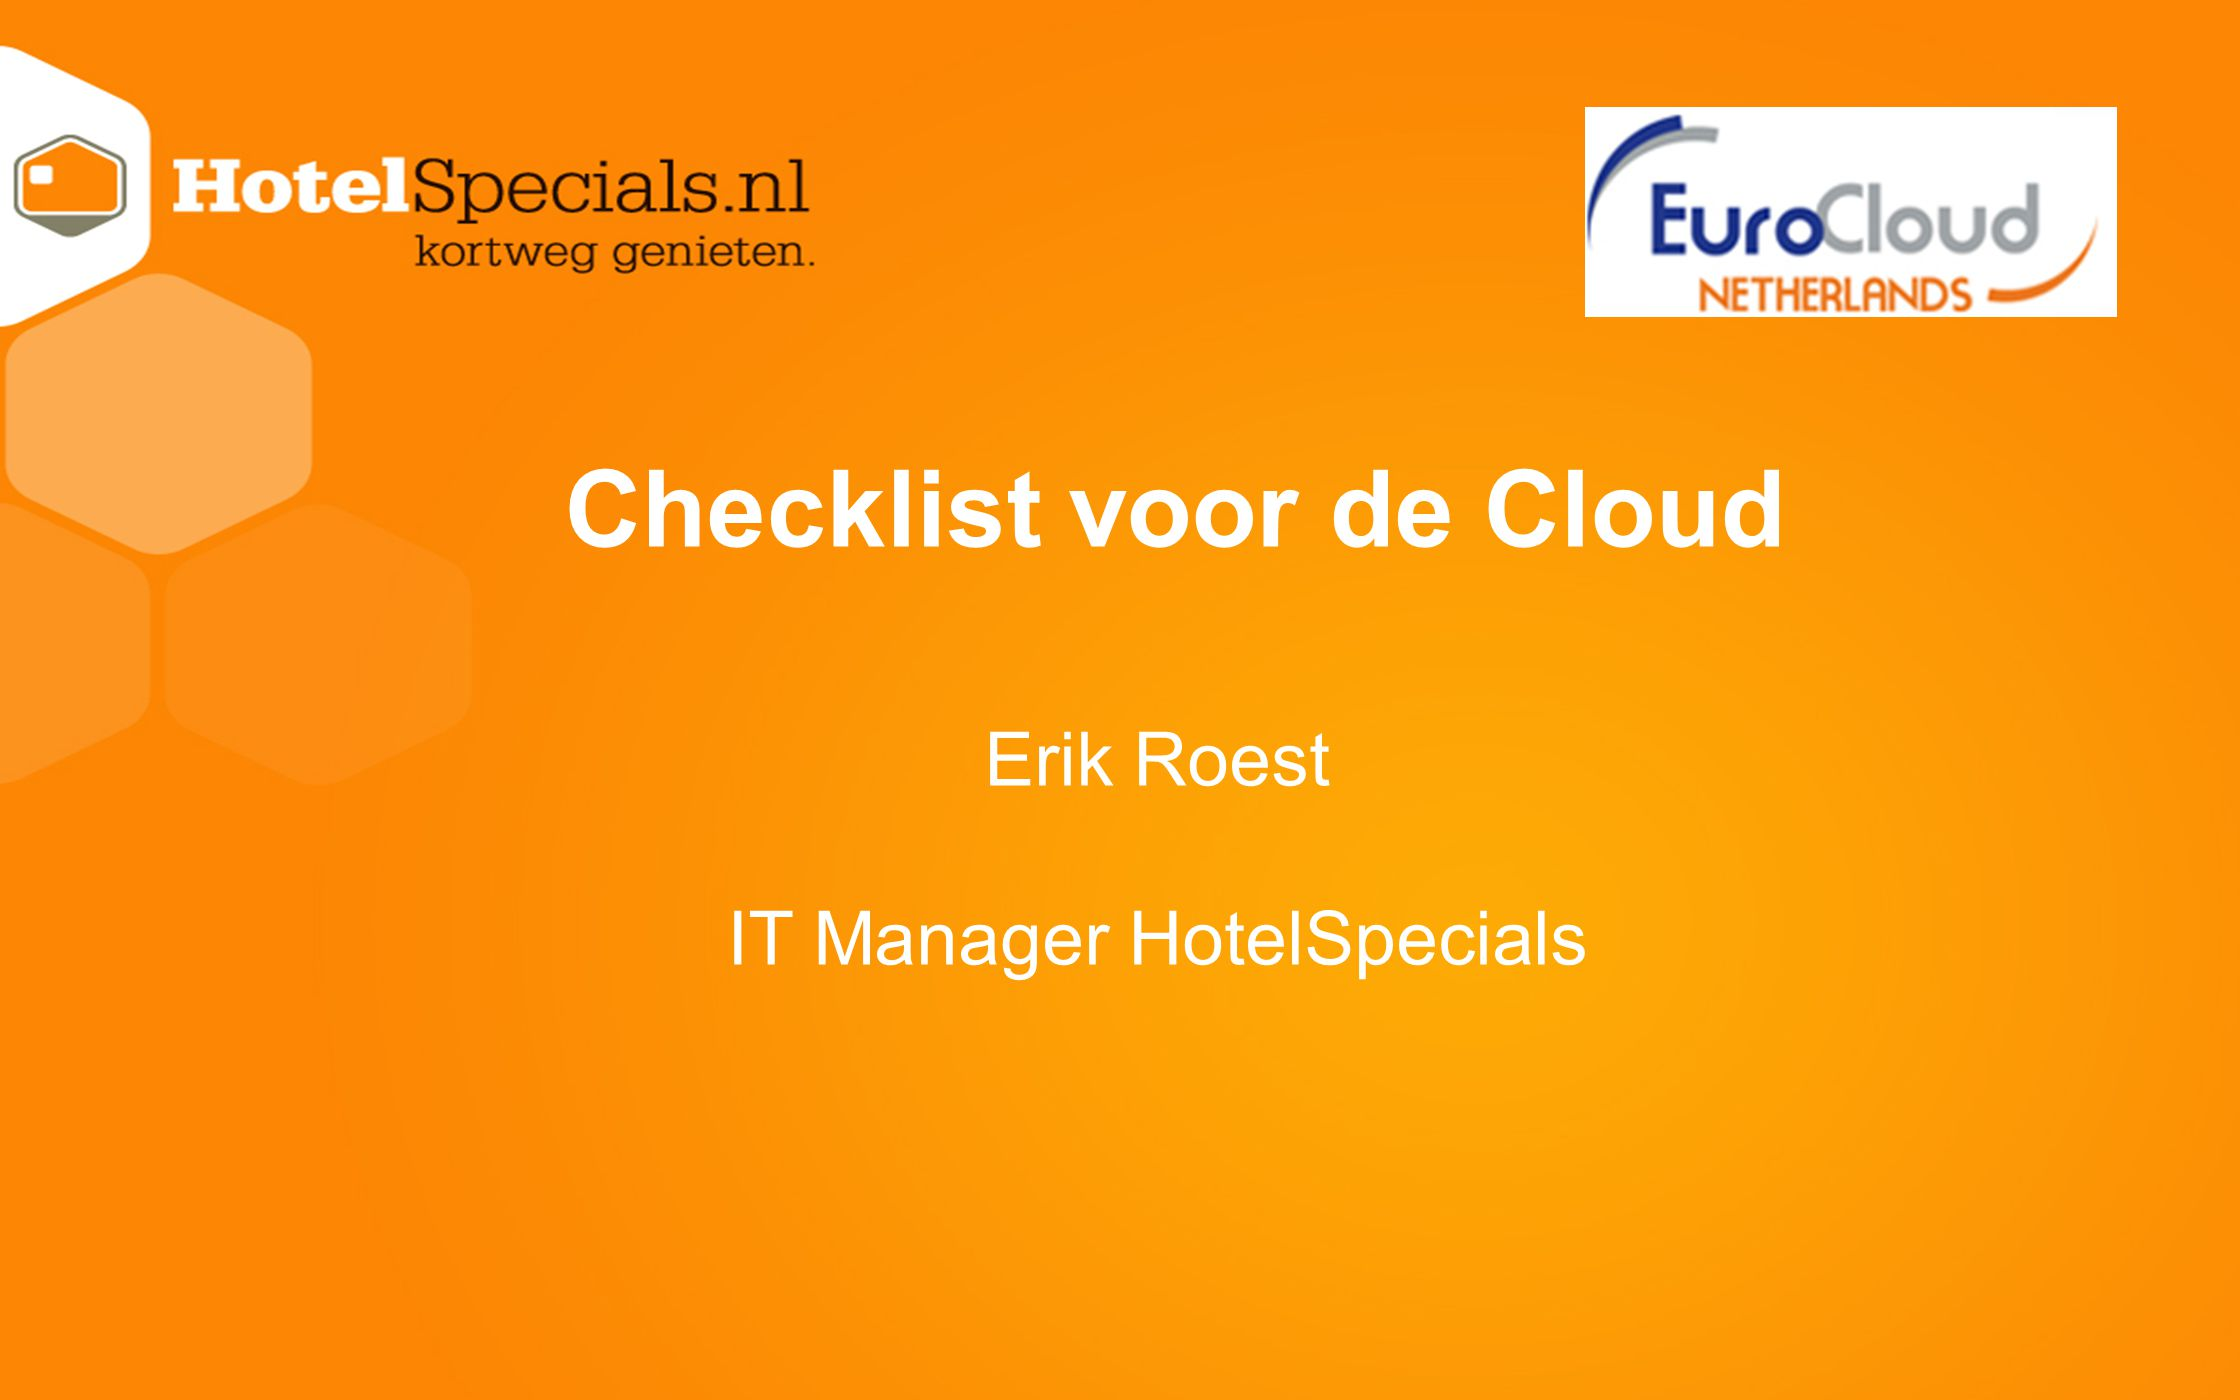 ‣ Introductie HotelSpecials ‣ Business Needs ‣ Functies HotelSpecials Labels ‣ Applicaties ‣ Architectuur HotelSpecials ‣ Infrastructuur Private Cloud ‣ Toekomst ‣ Samenvatting Agenda